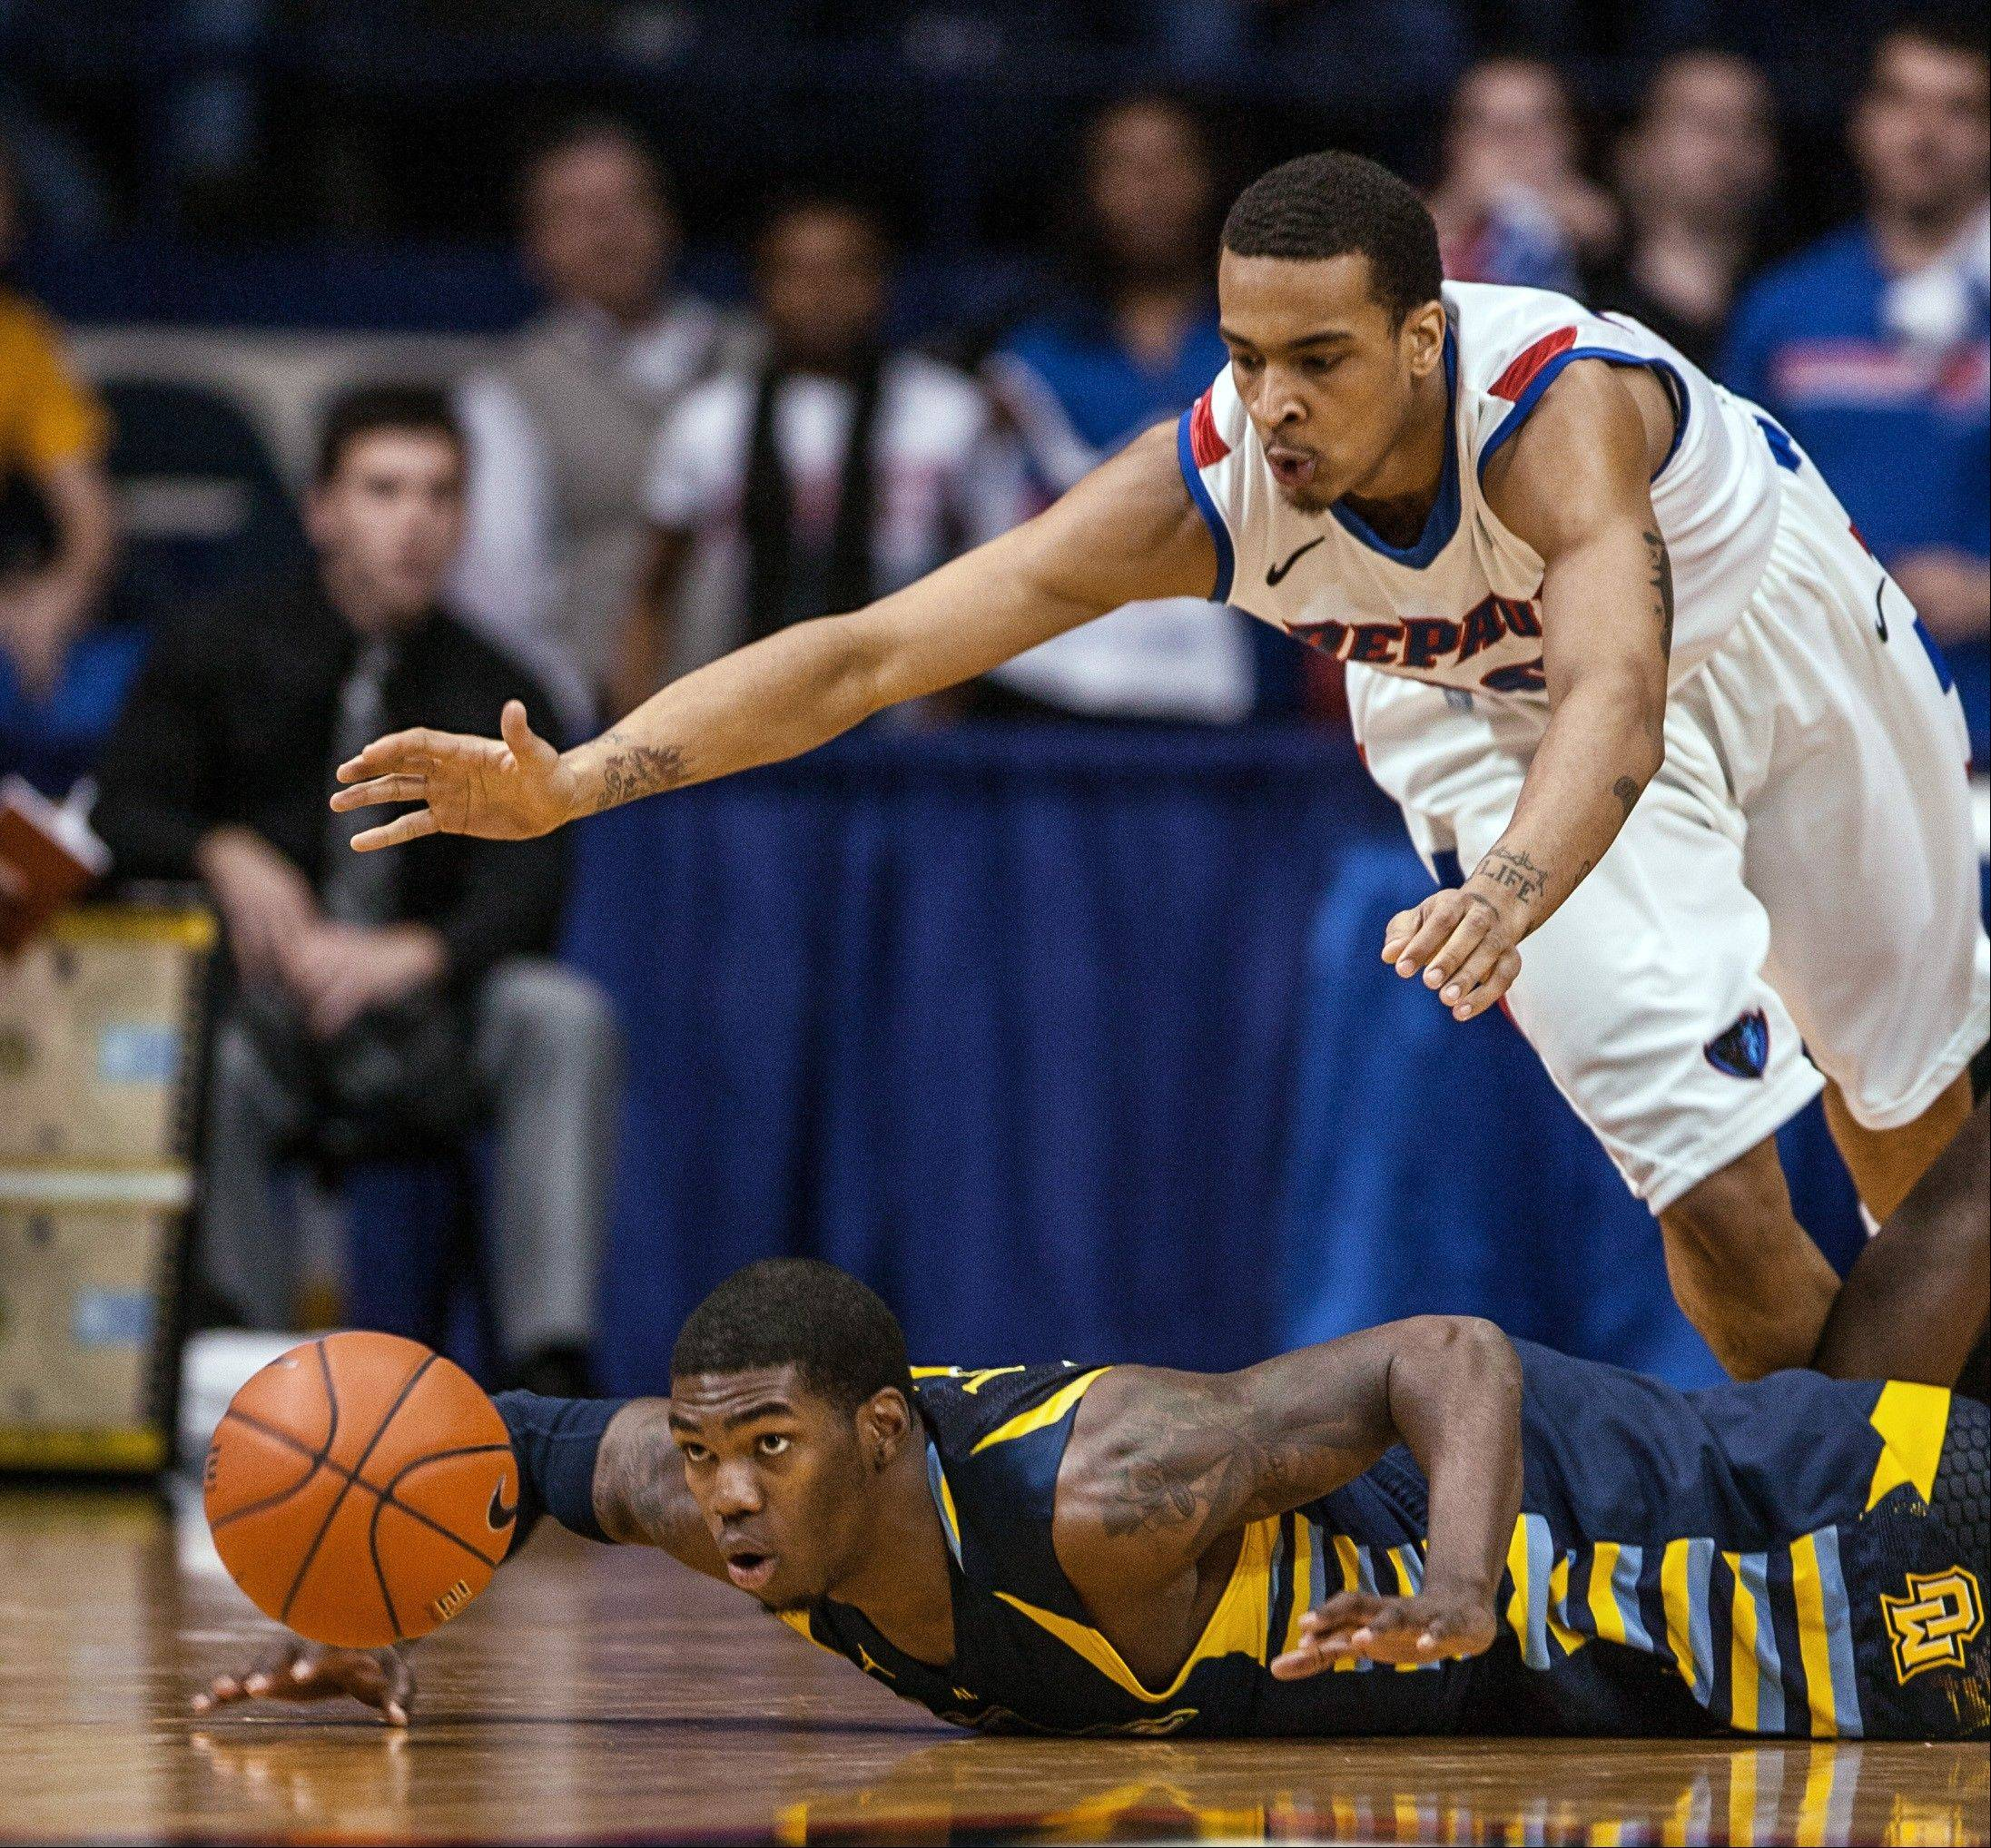 DePaul's Brandon Young dives over Marquette's Jamail Jones for the loose ball during the second half Monday night.